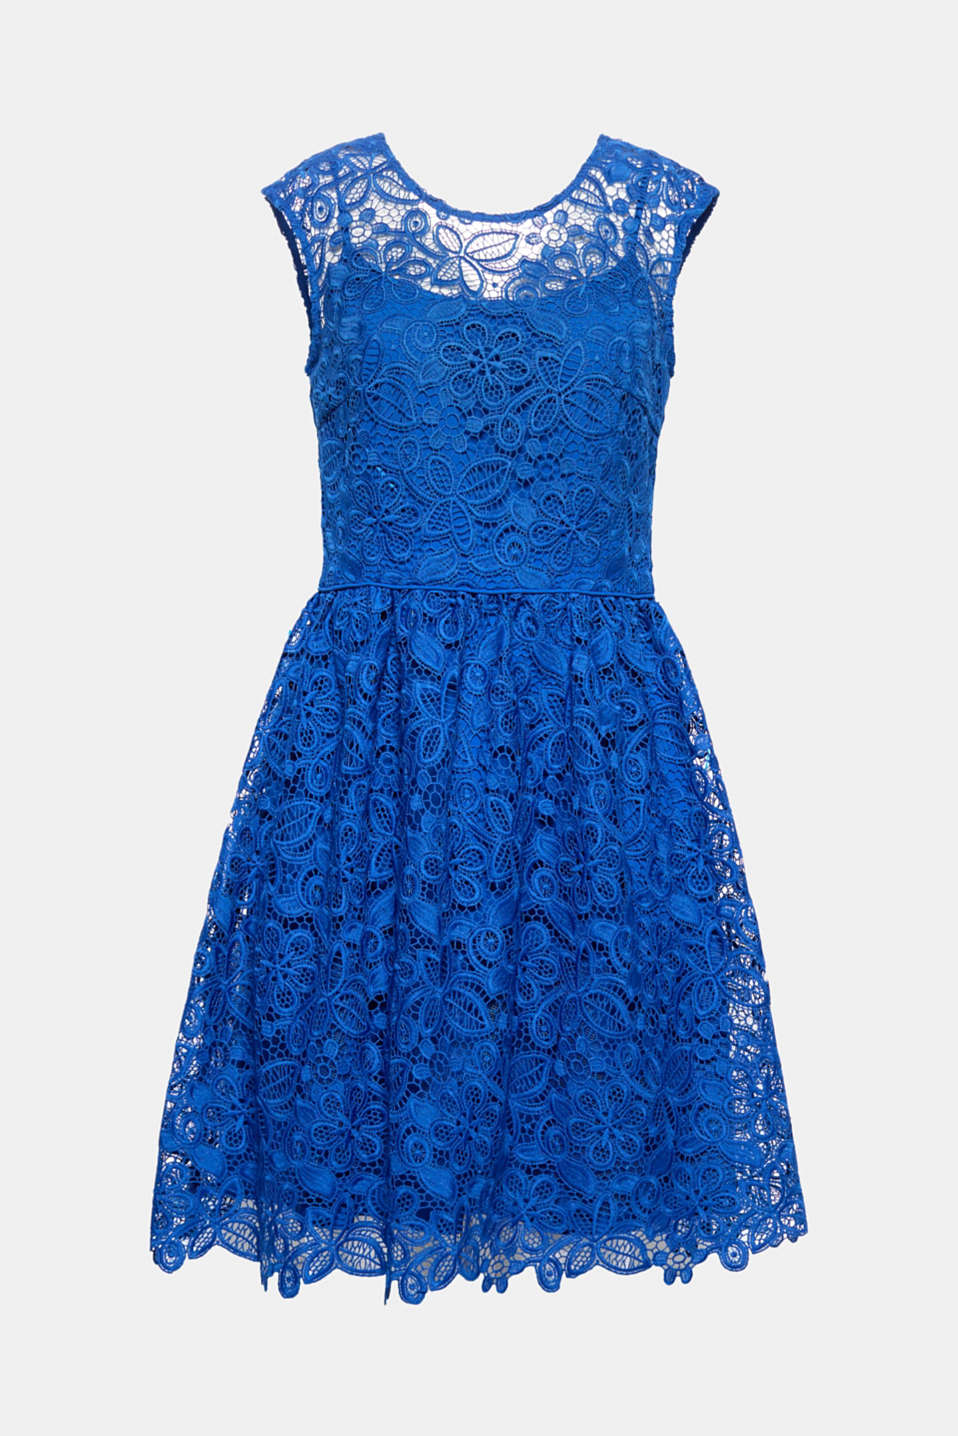 Take some decorative lace, two sexy necklines and a swirling skirt - and go wild for a sensational party dress with high-fashion, feminine flair!